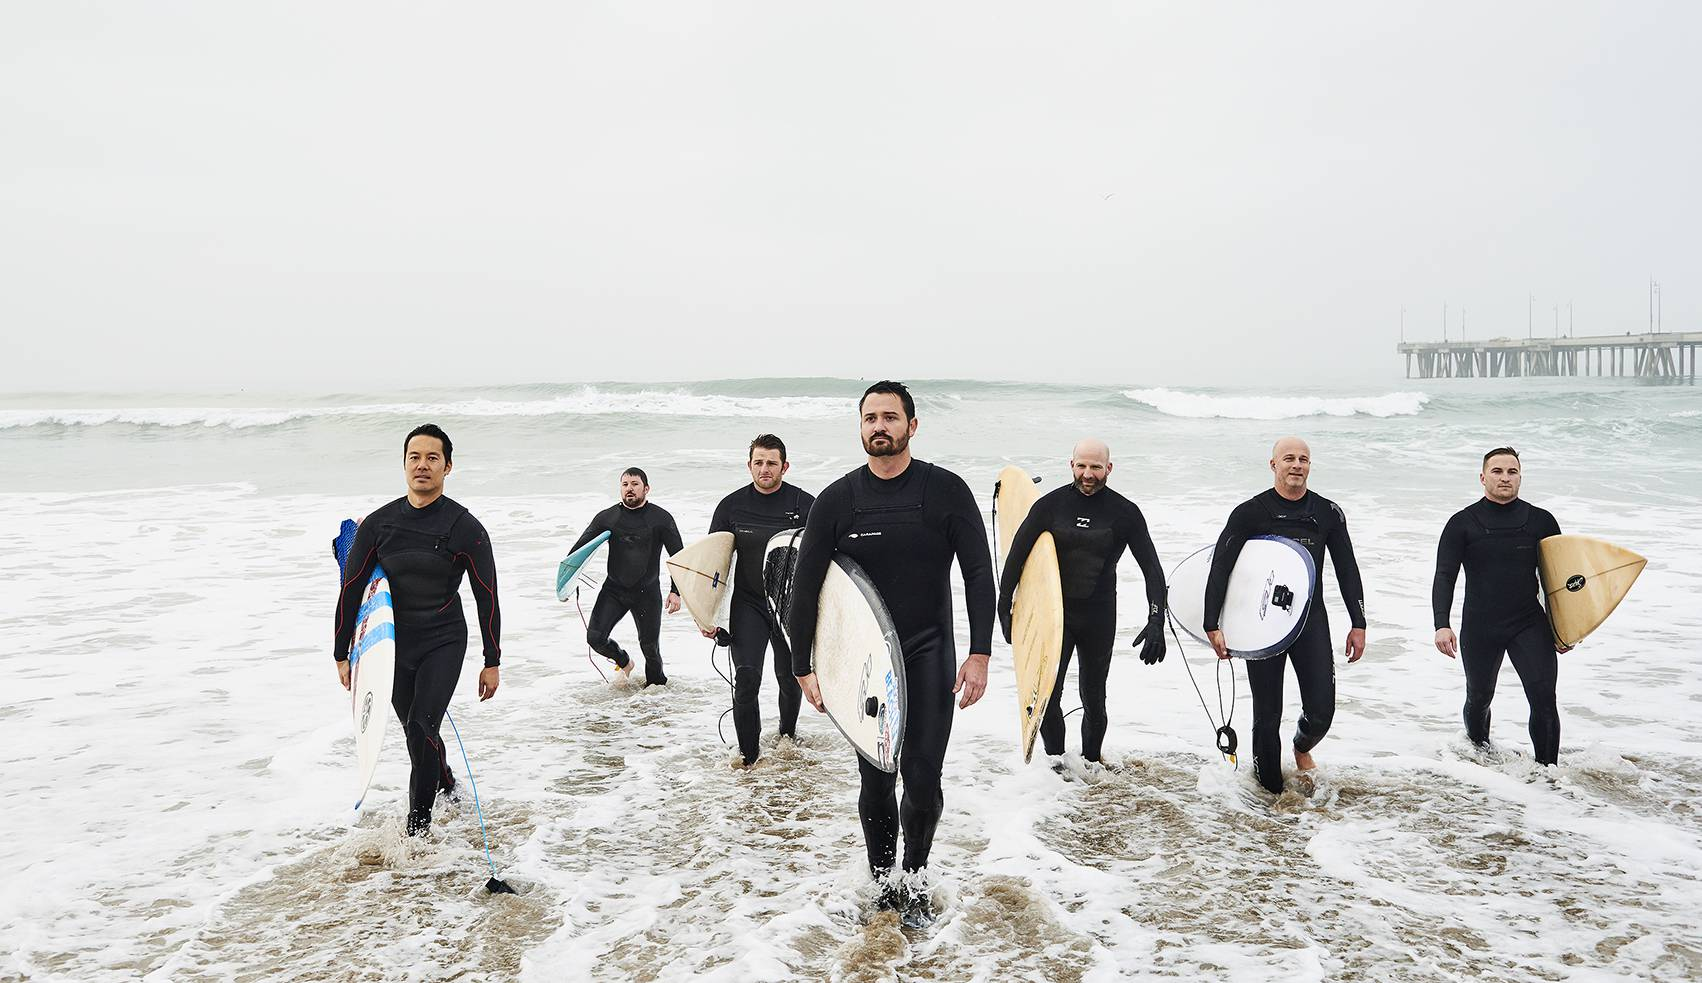 Founder Rob Lambert, center, with a dawn squad of surf-happy tech professionals after a prework session near the Venice Beach pier.